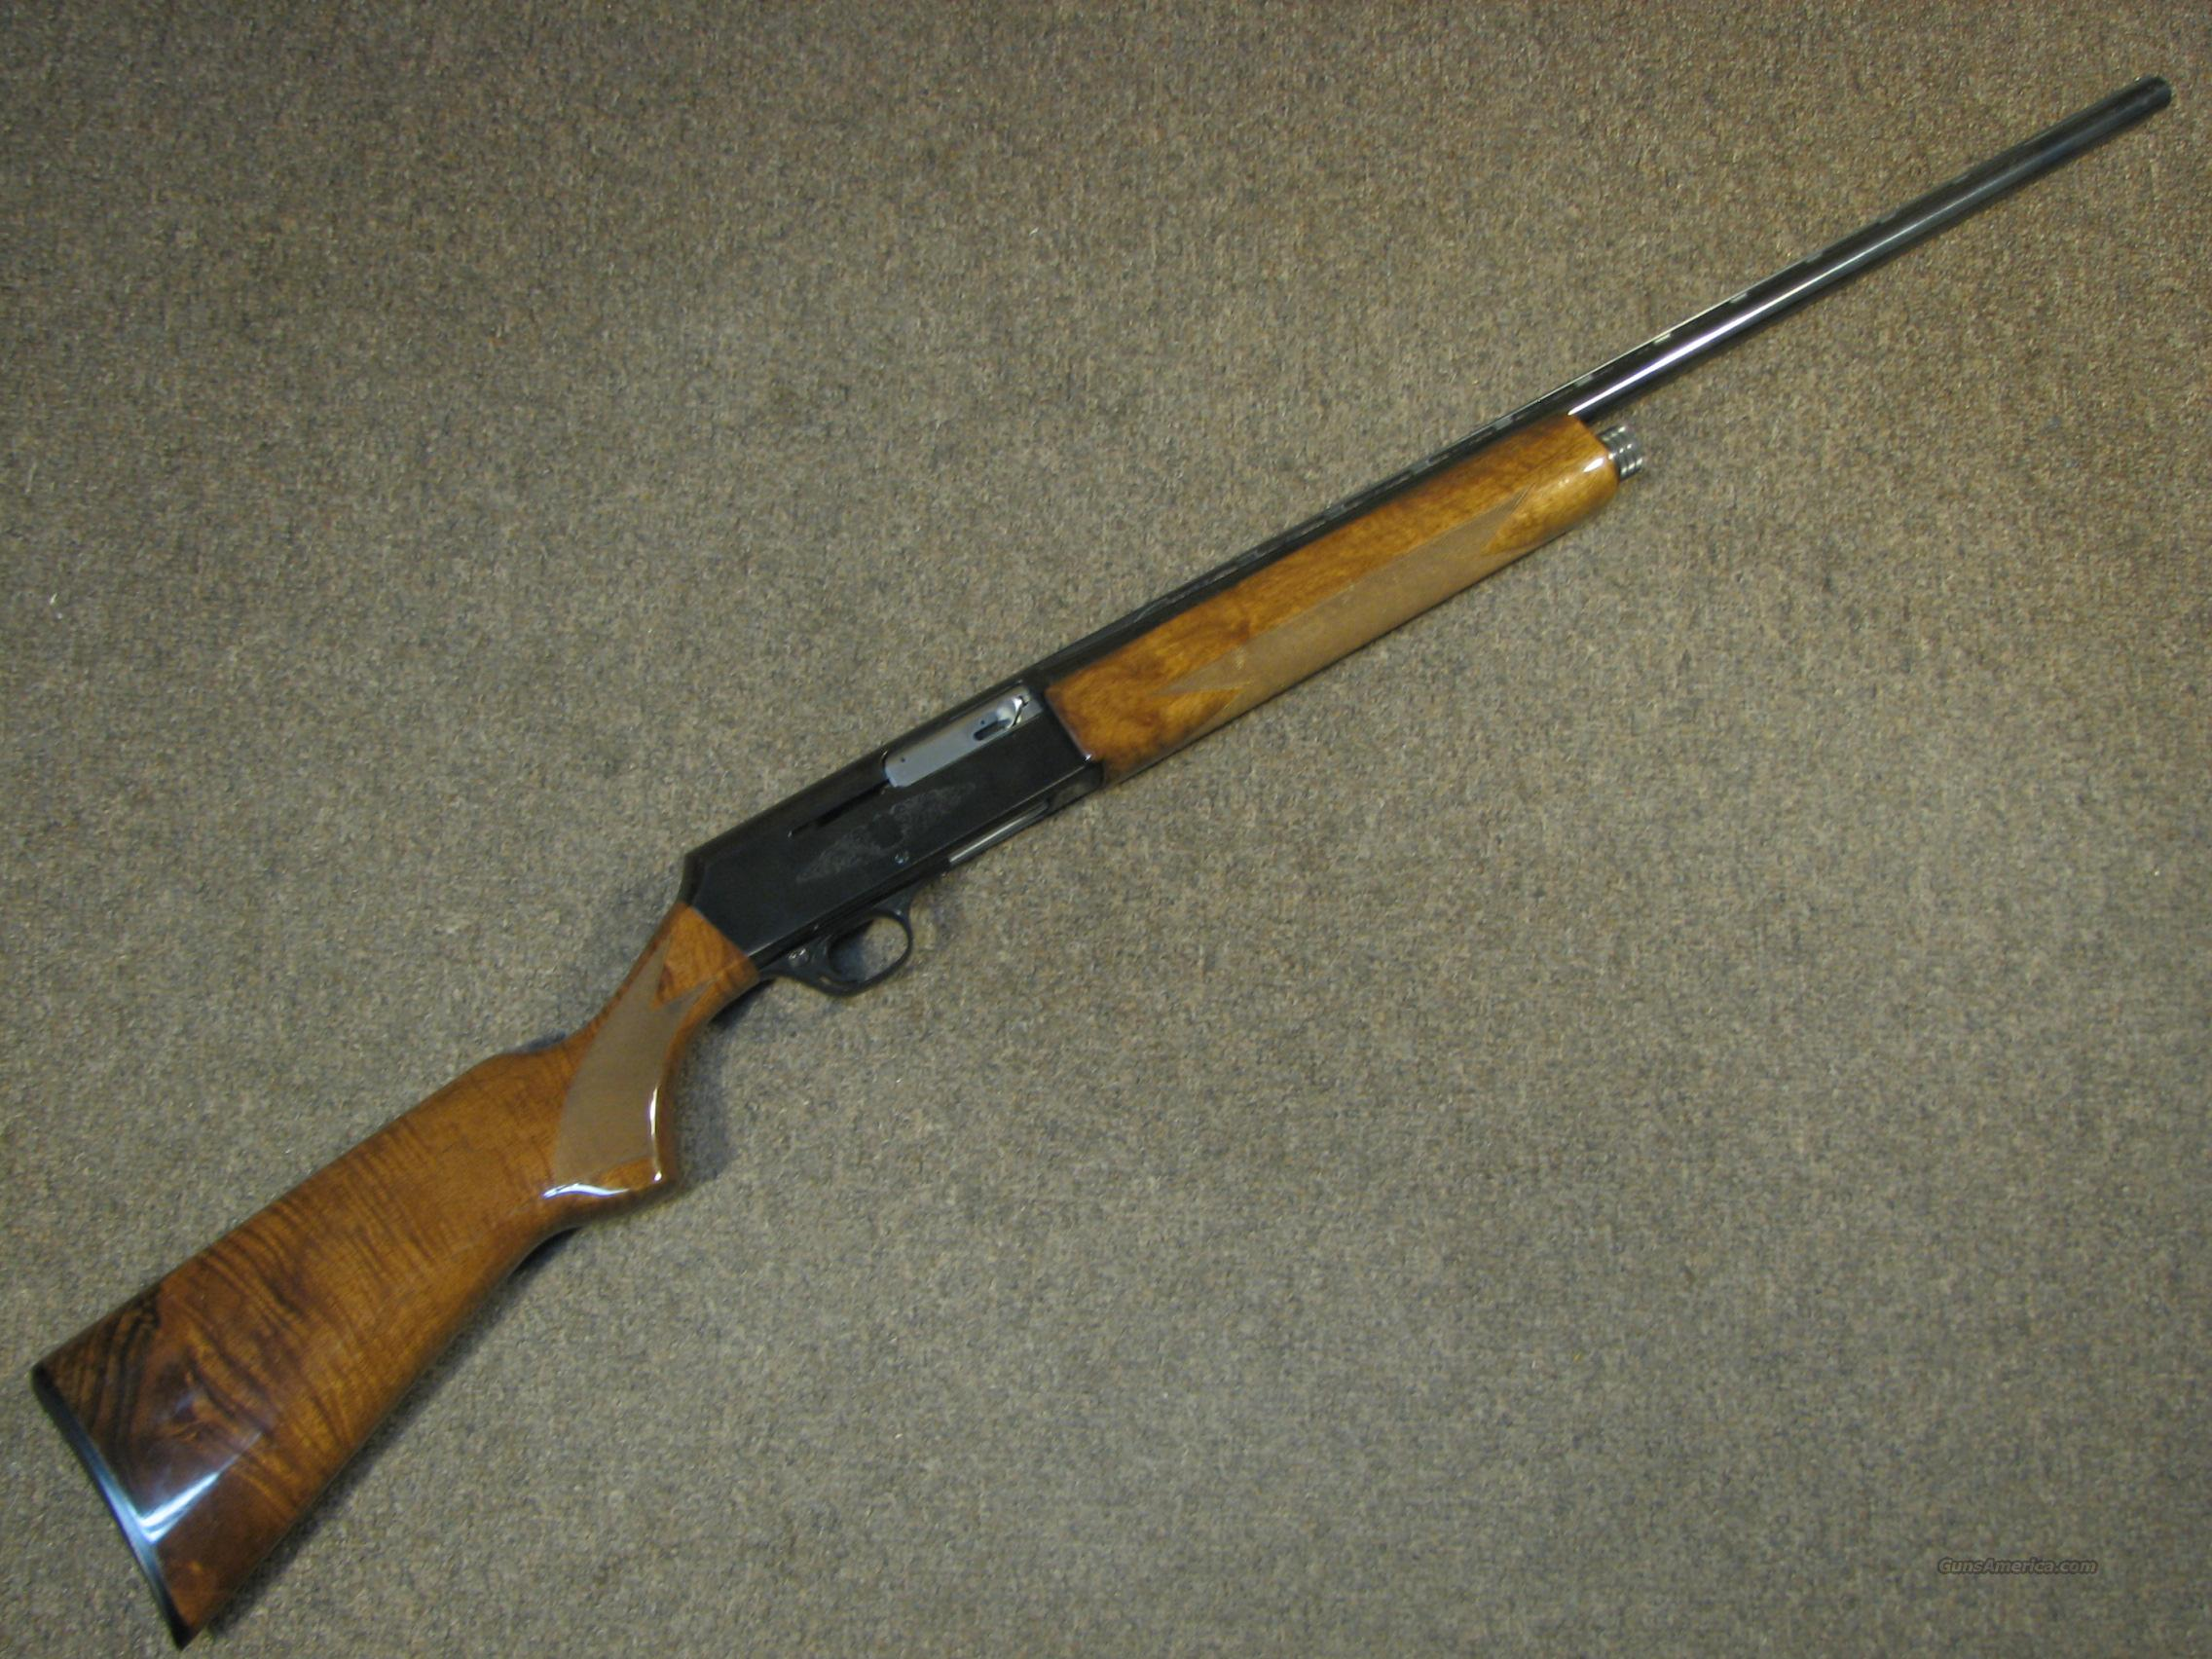 BROWNING B2000 12 GAUGE - EXCELLENT CONDITION  Guns > Shotguns > Browning Shotguns > Autoloaders > Hunting